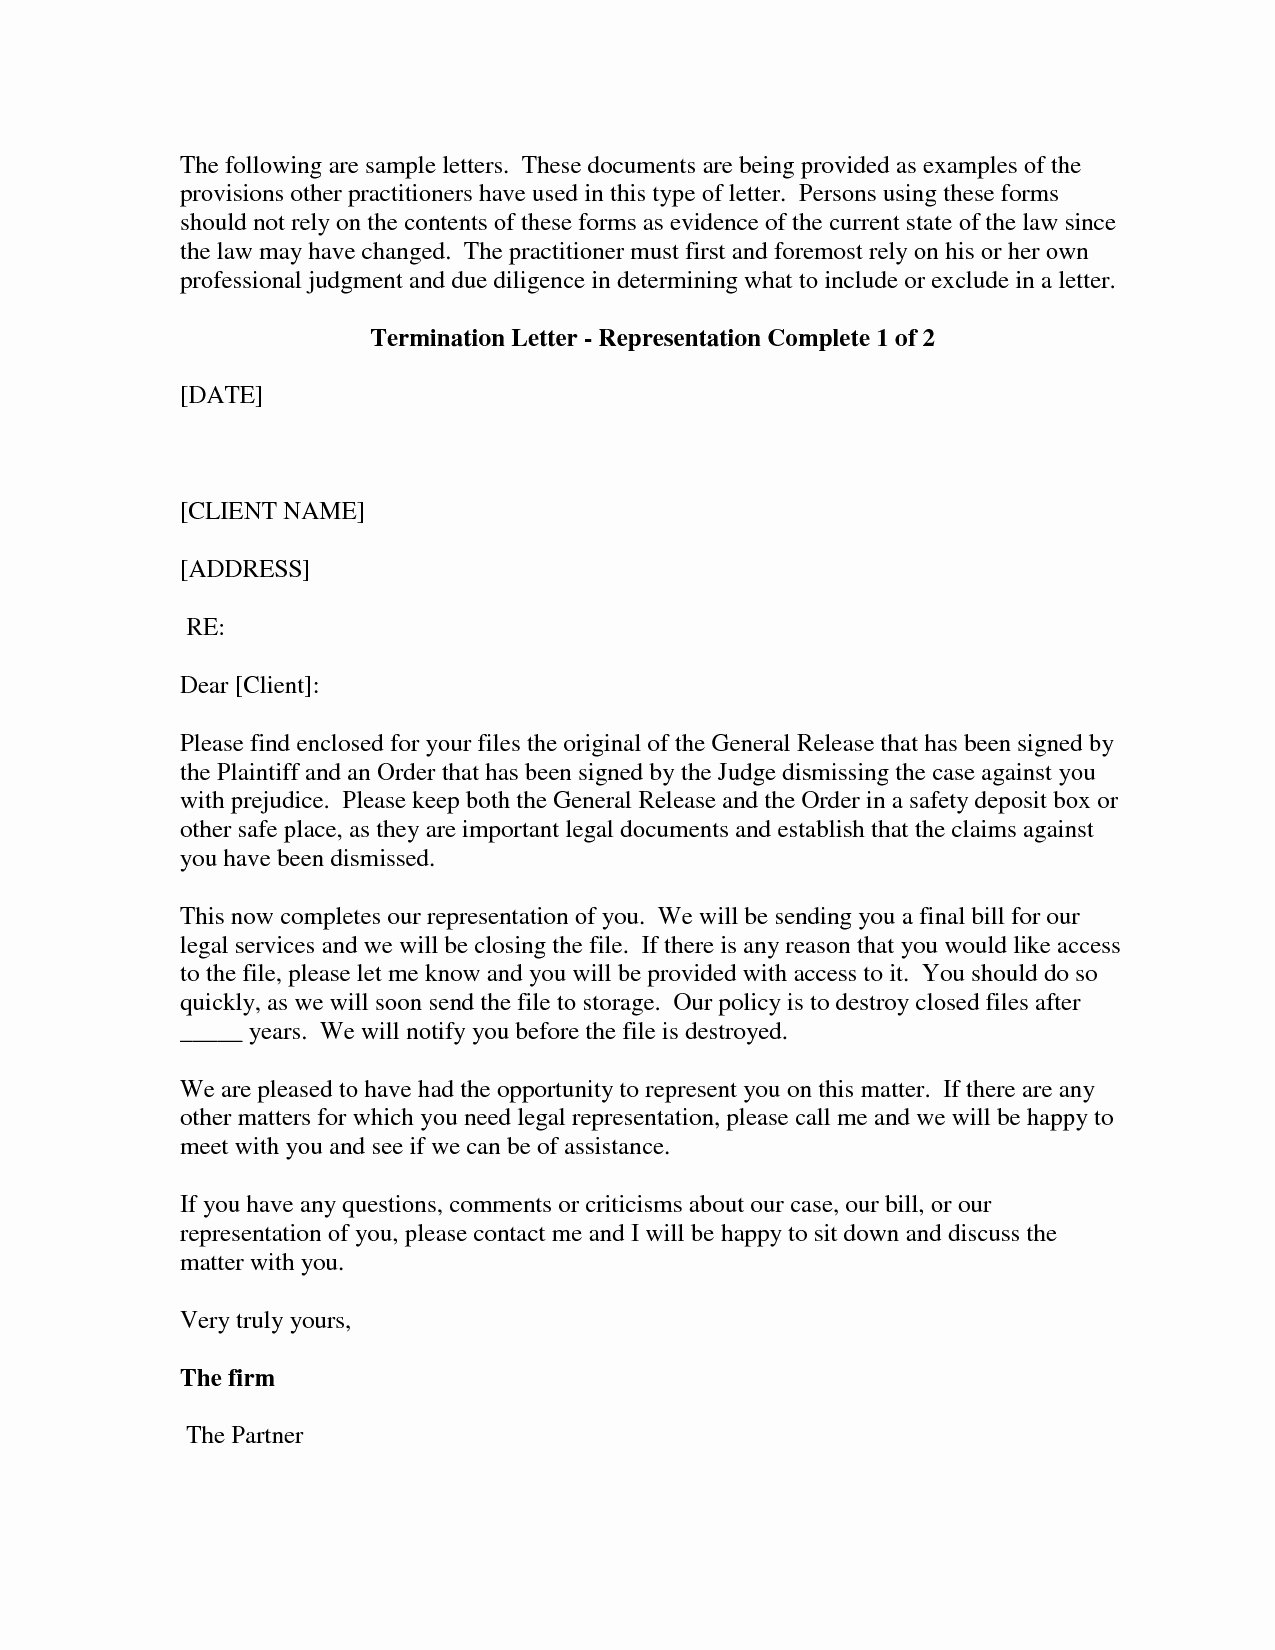 Client Termination Letter Template Luxury Sample attorney withdrawal Letter to Client